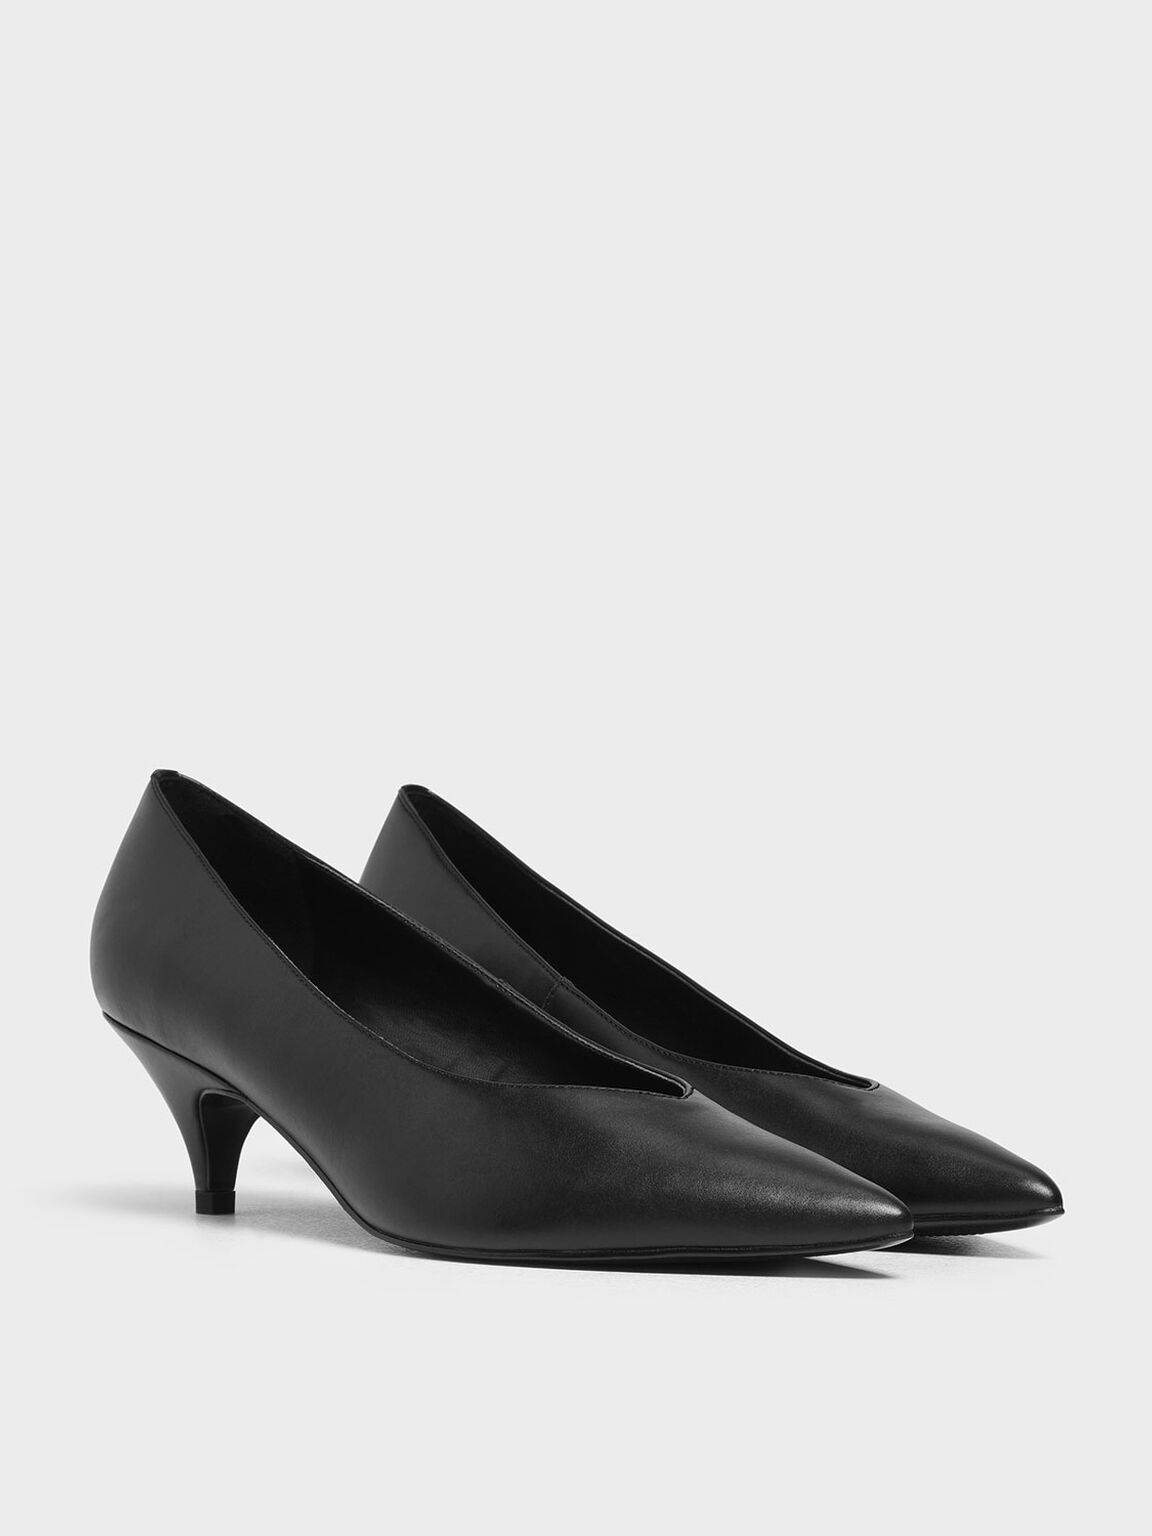 Pointed Toe Kitten Heel Pumps, Black, hi-res